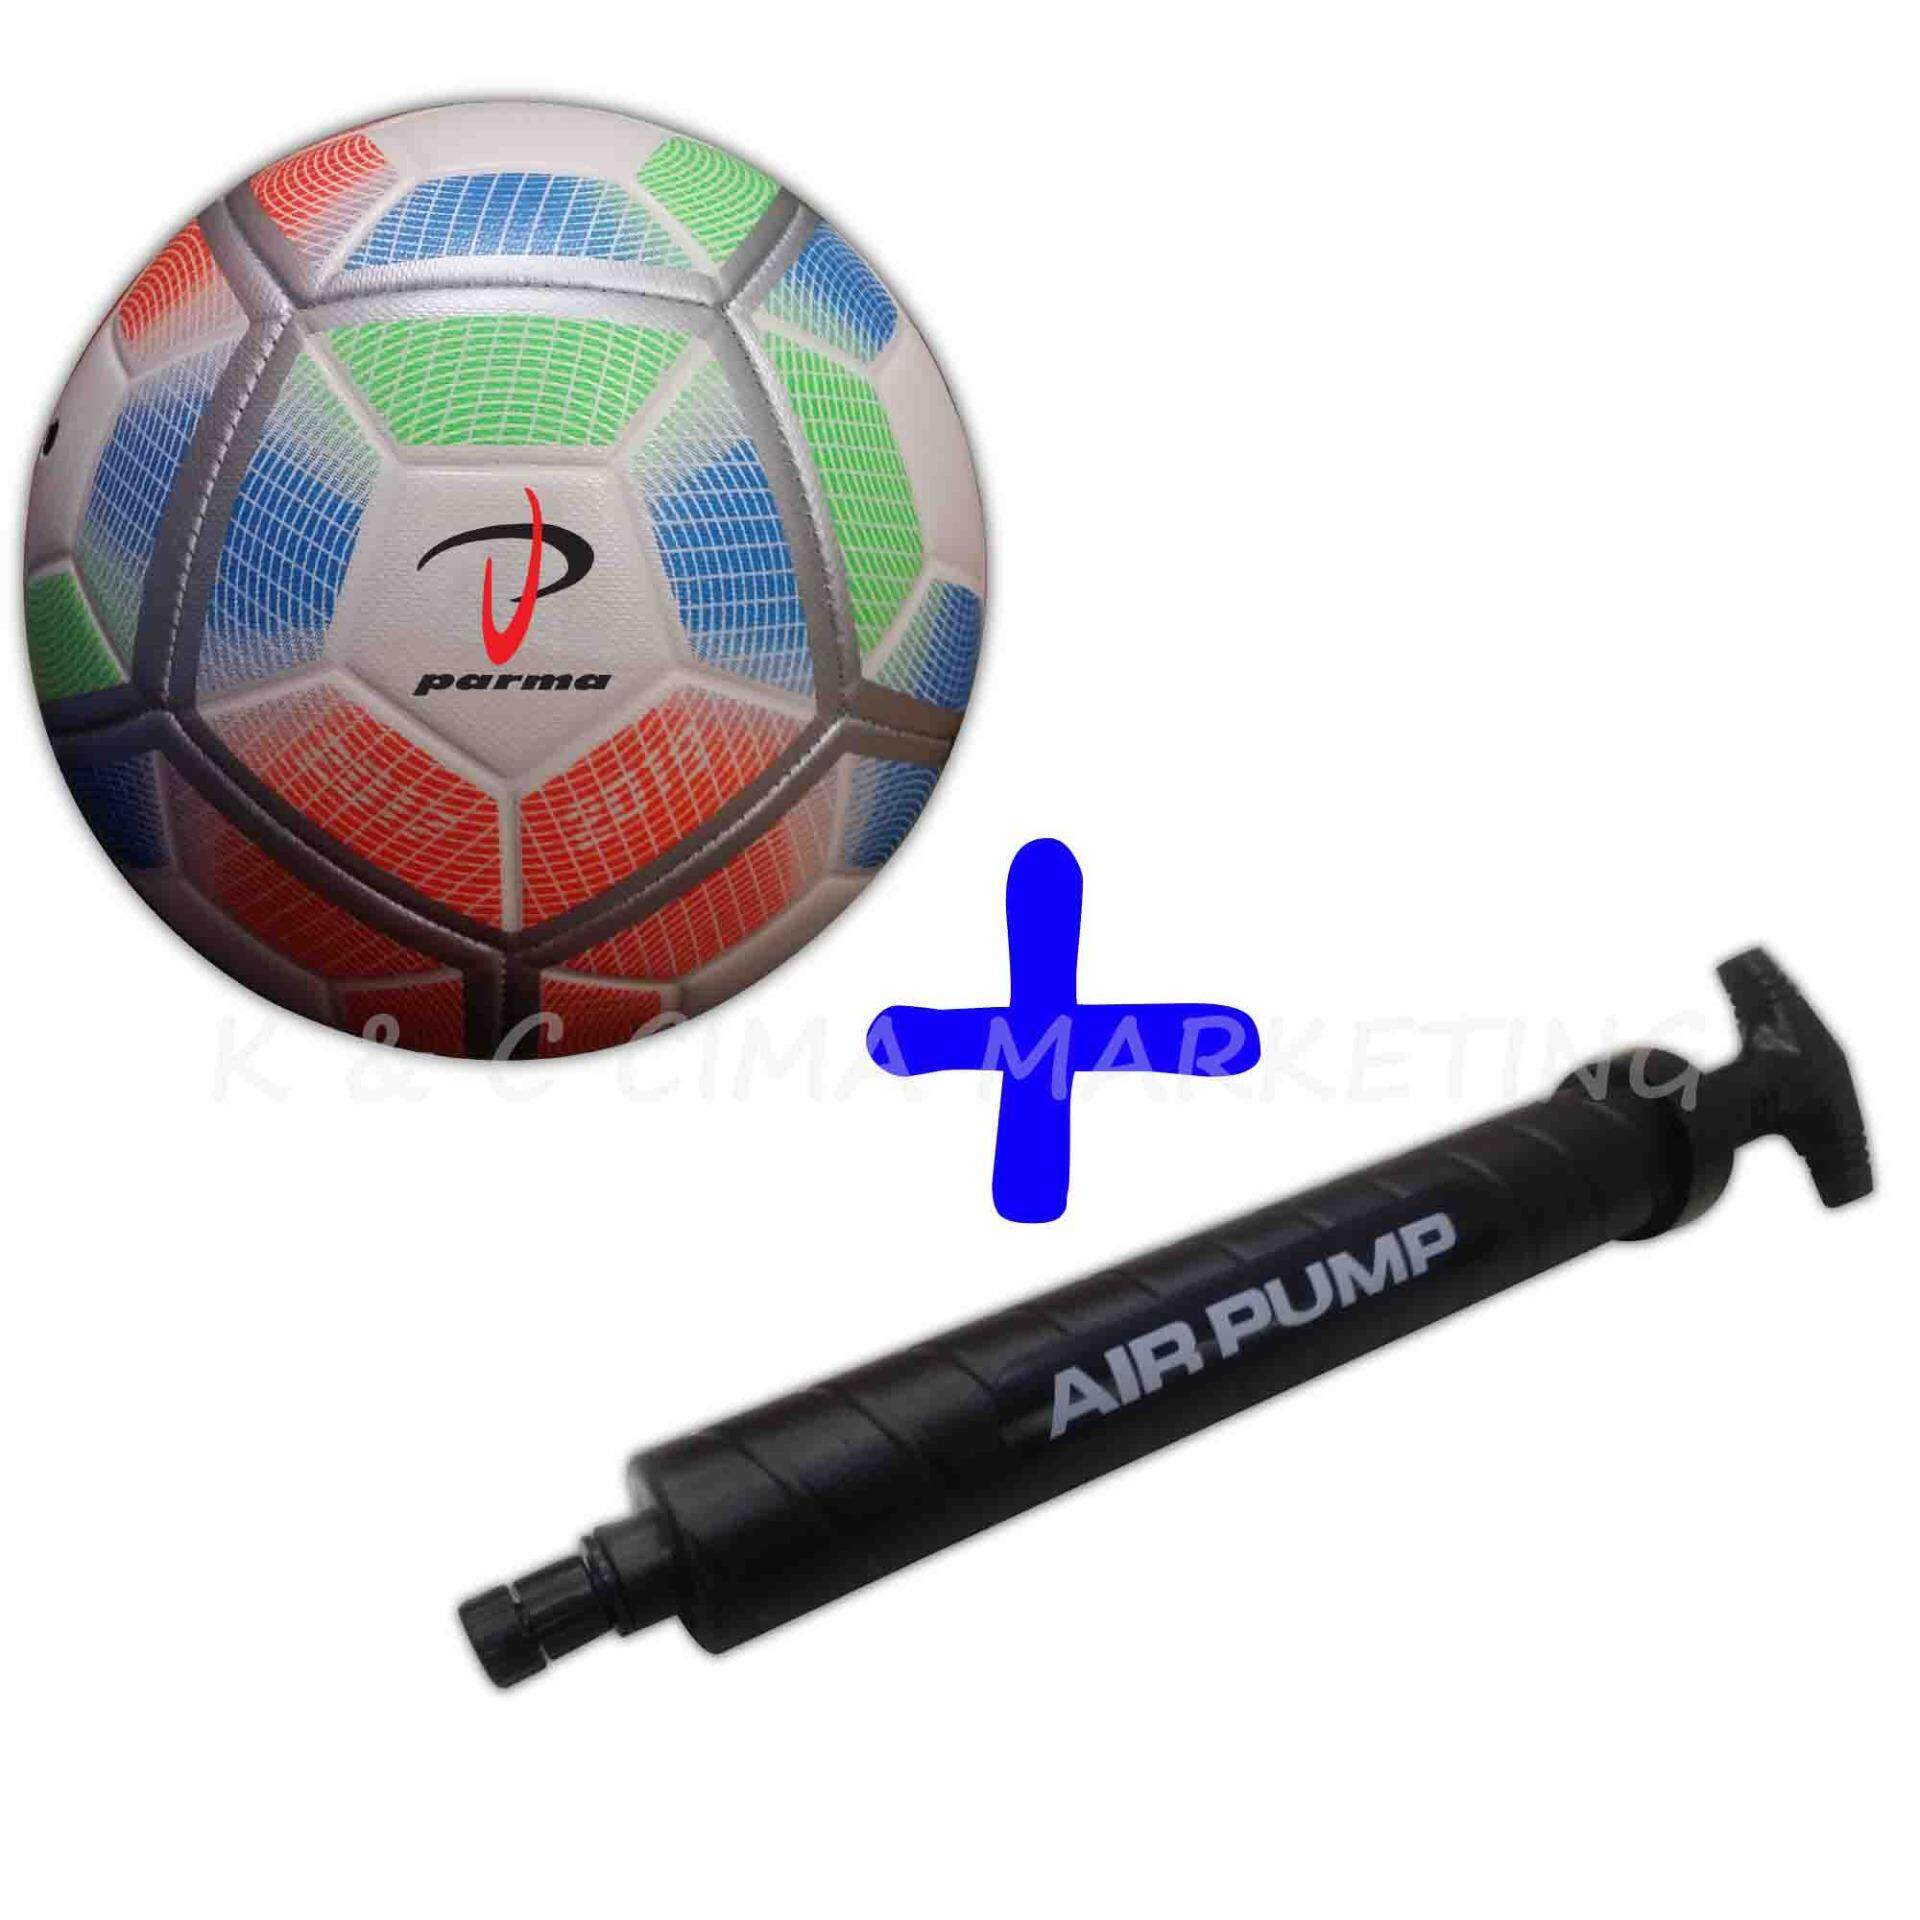 Parma Machine Stitched Football 888 Size 5 With Double Action Hand pump